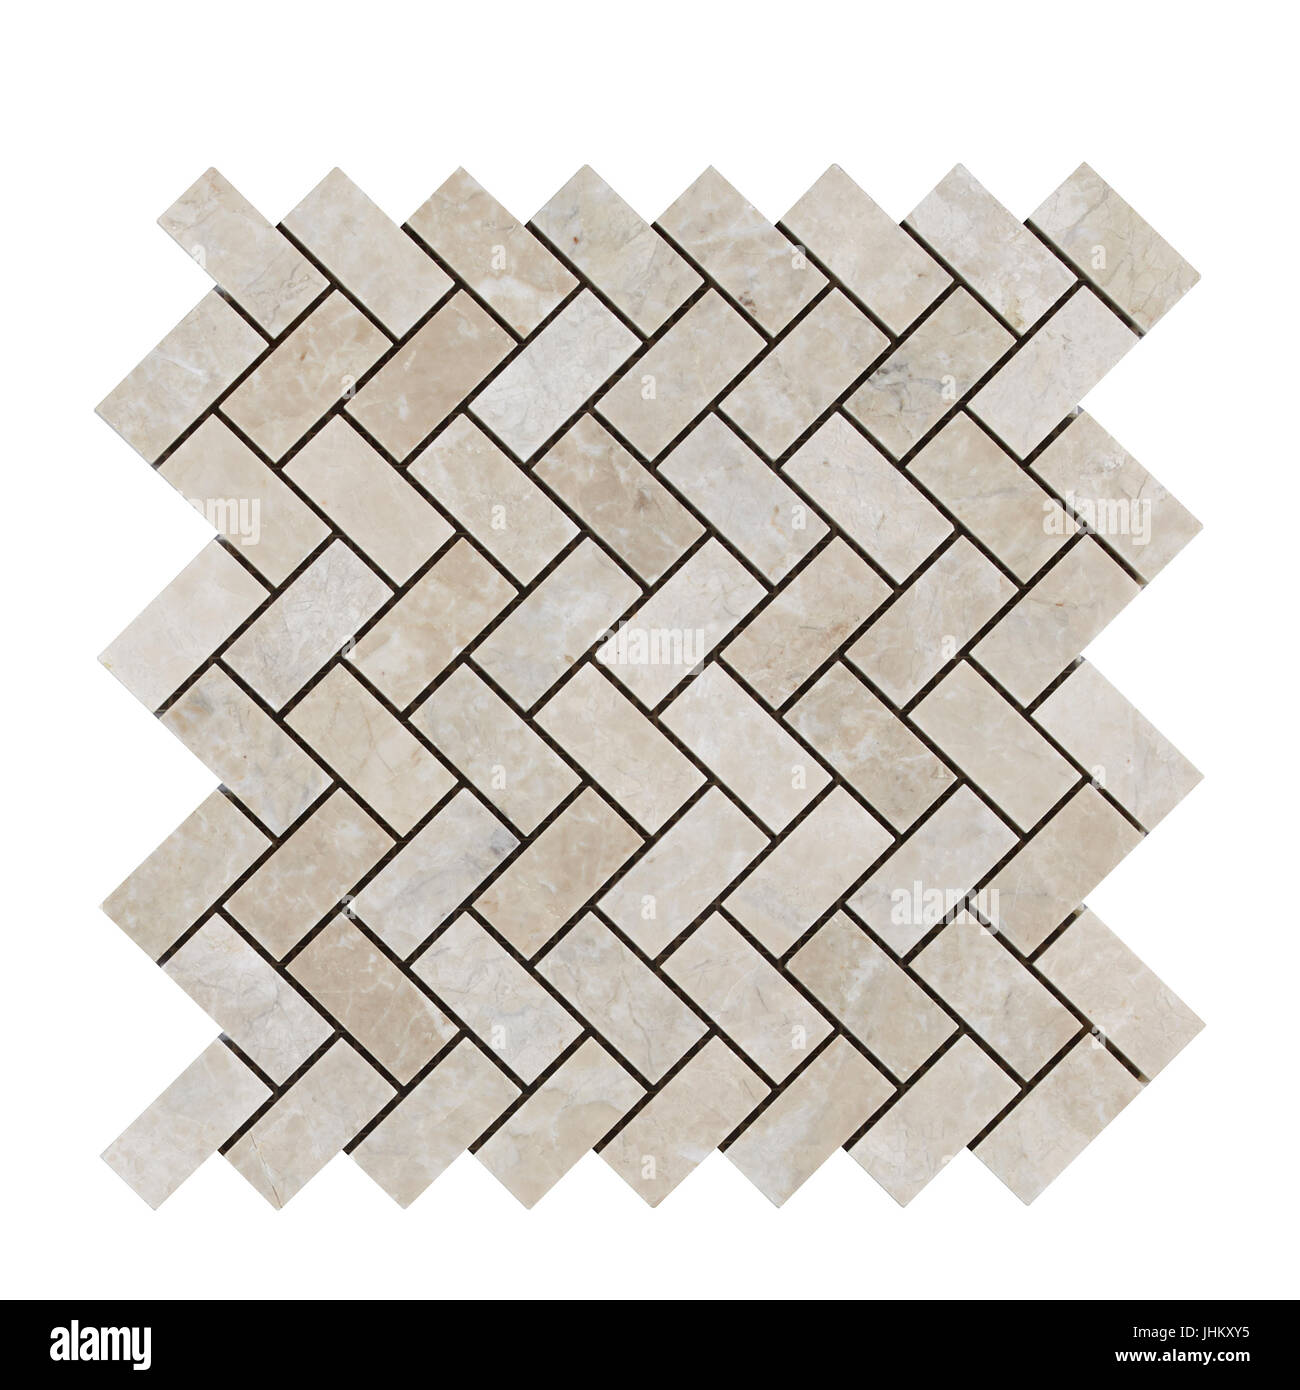 Mosaic Natural Stone pattern, Natural Stone texture, Natural Stone background. - Stock Image